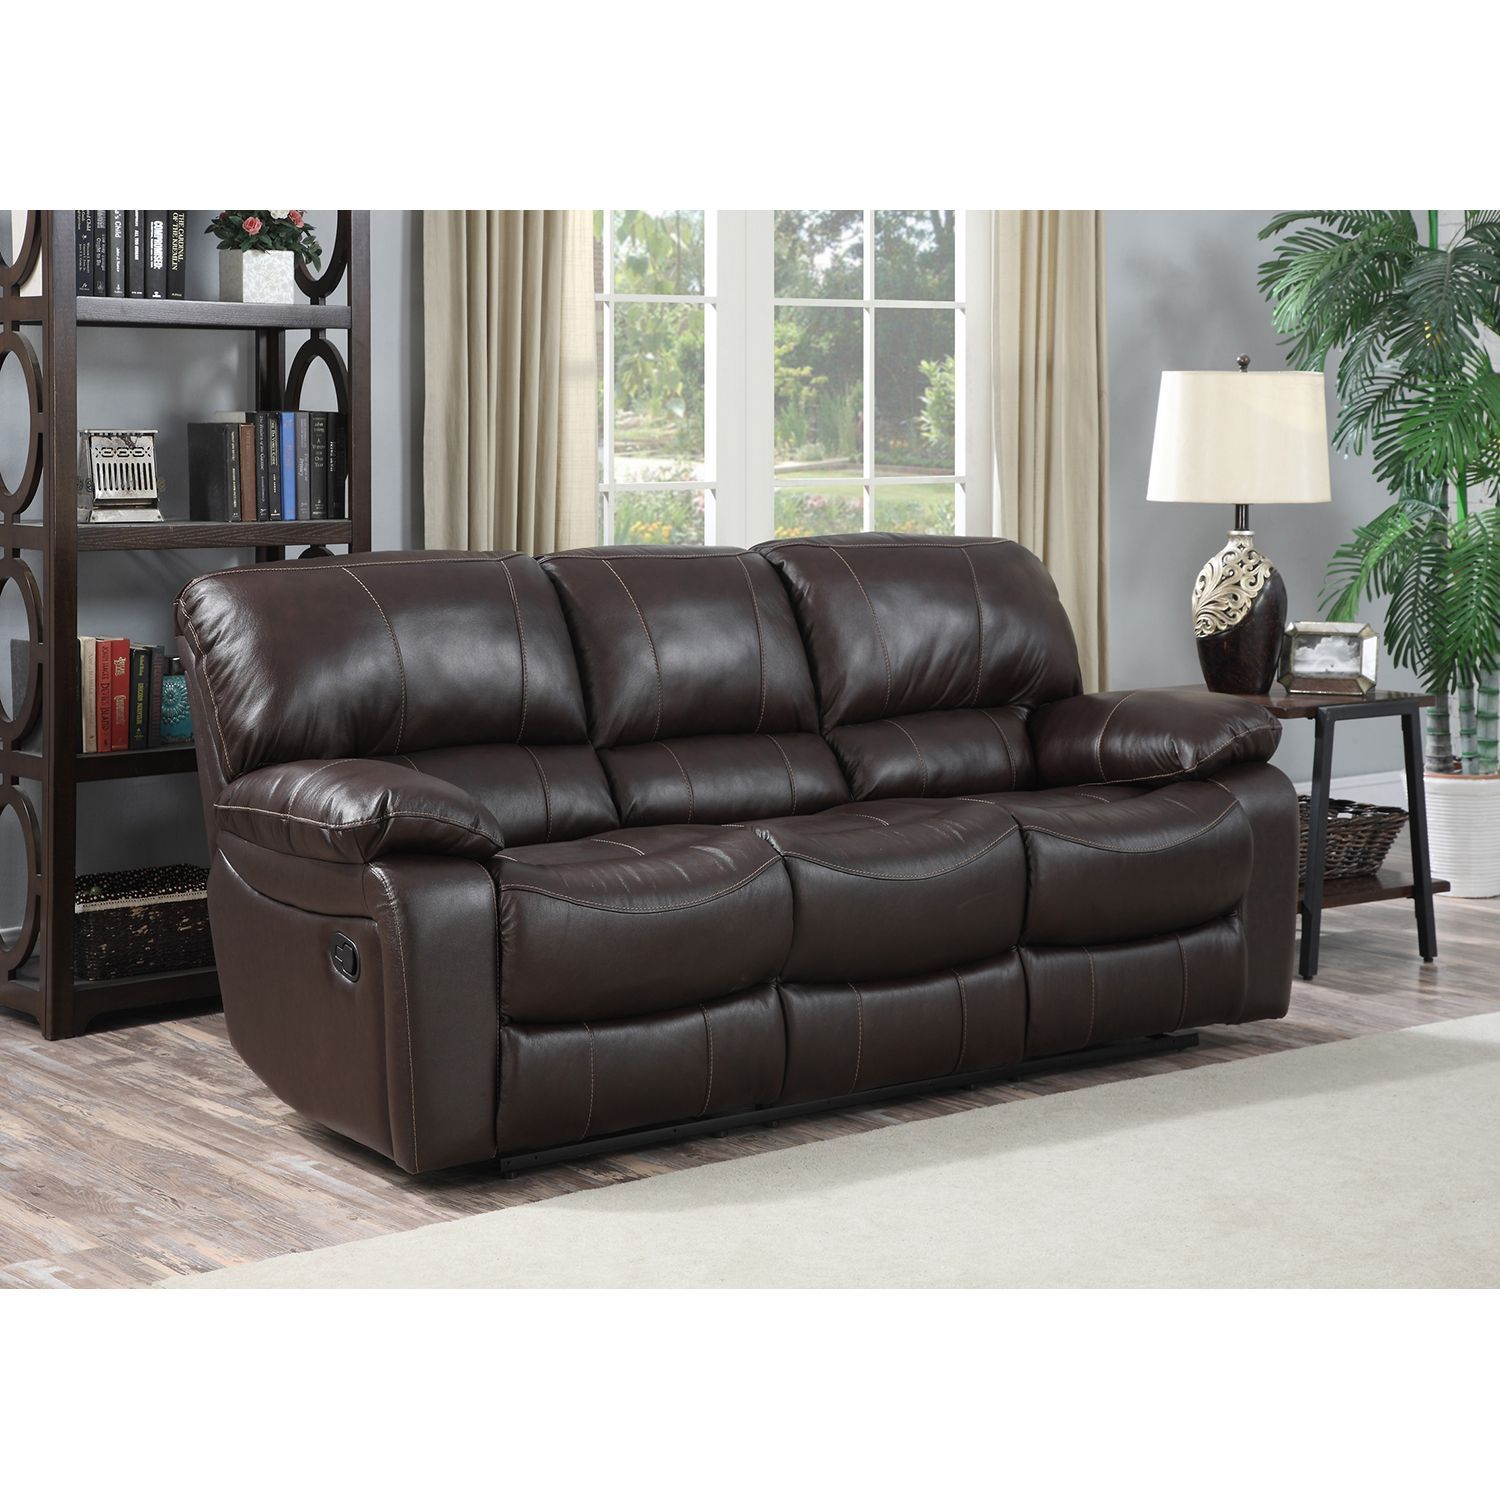 Redfield Leather Reclining Sofa Leather Reclining Sofa